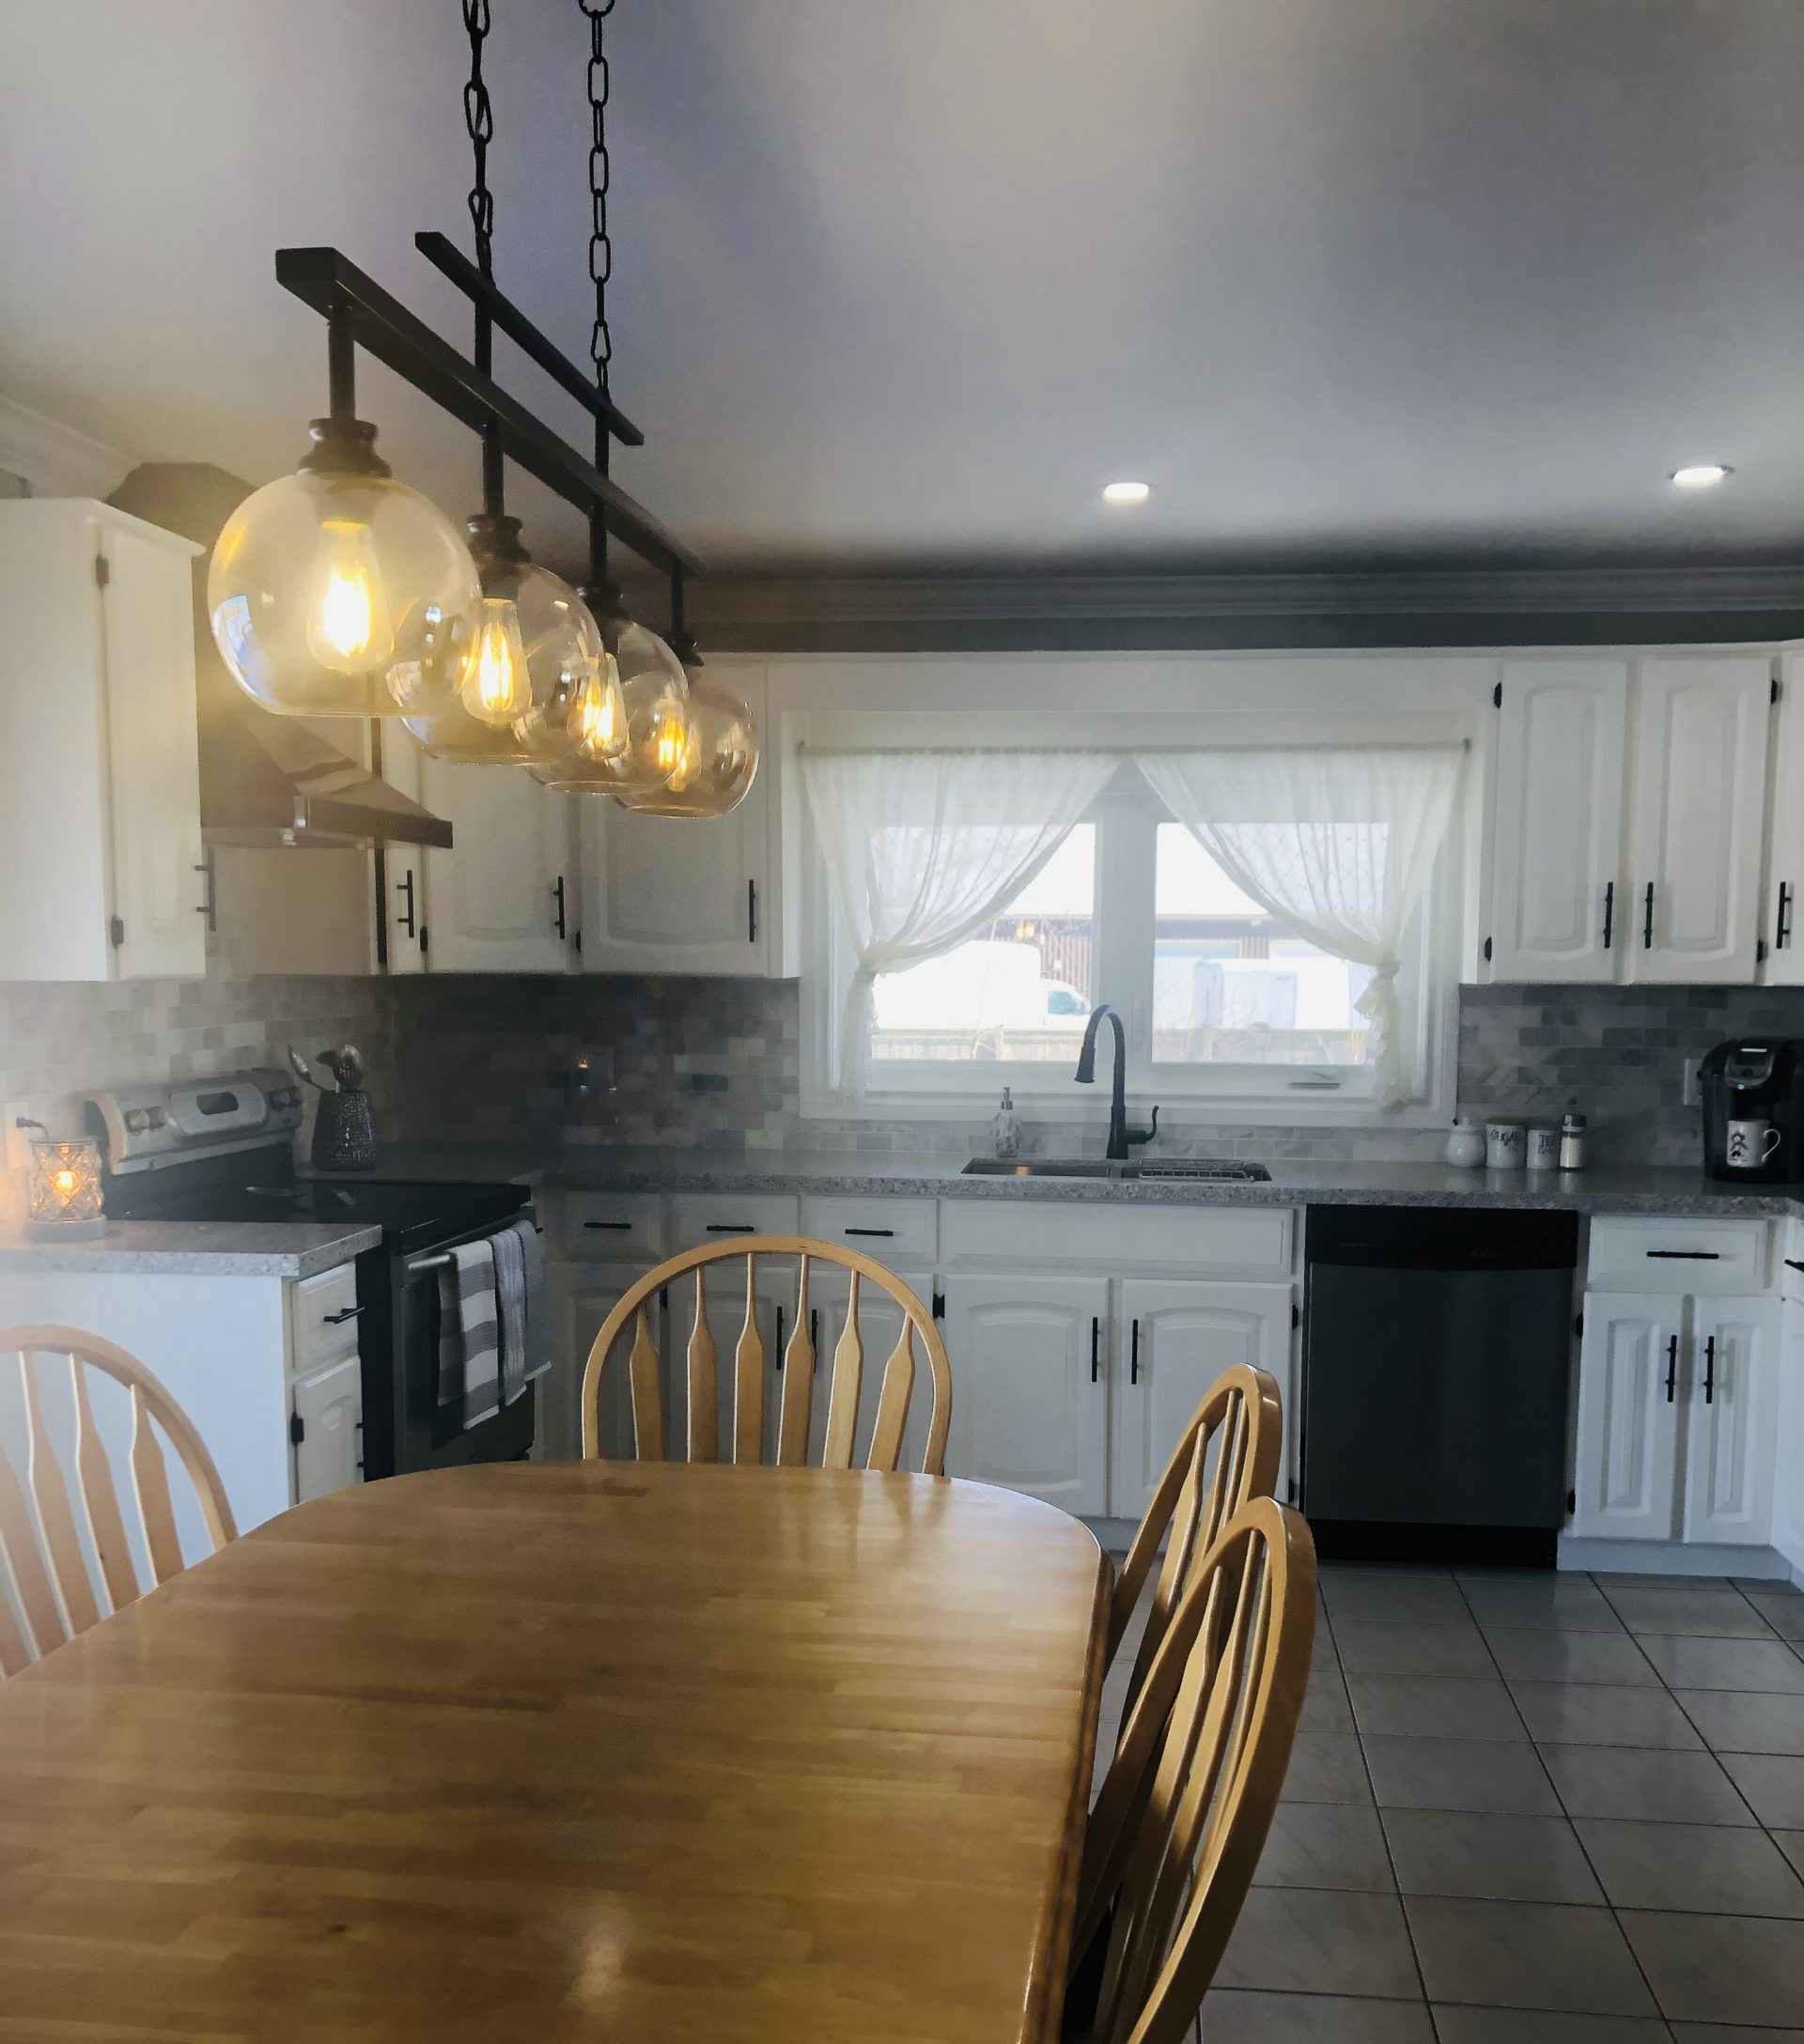 Kitchen Cabinets Before & After After